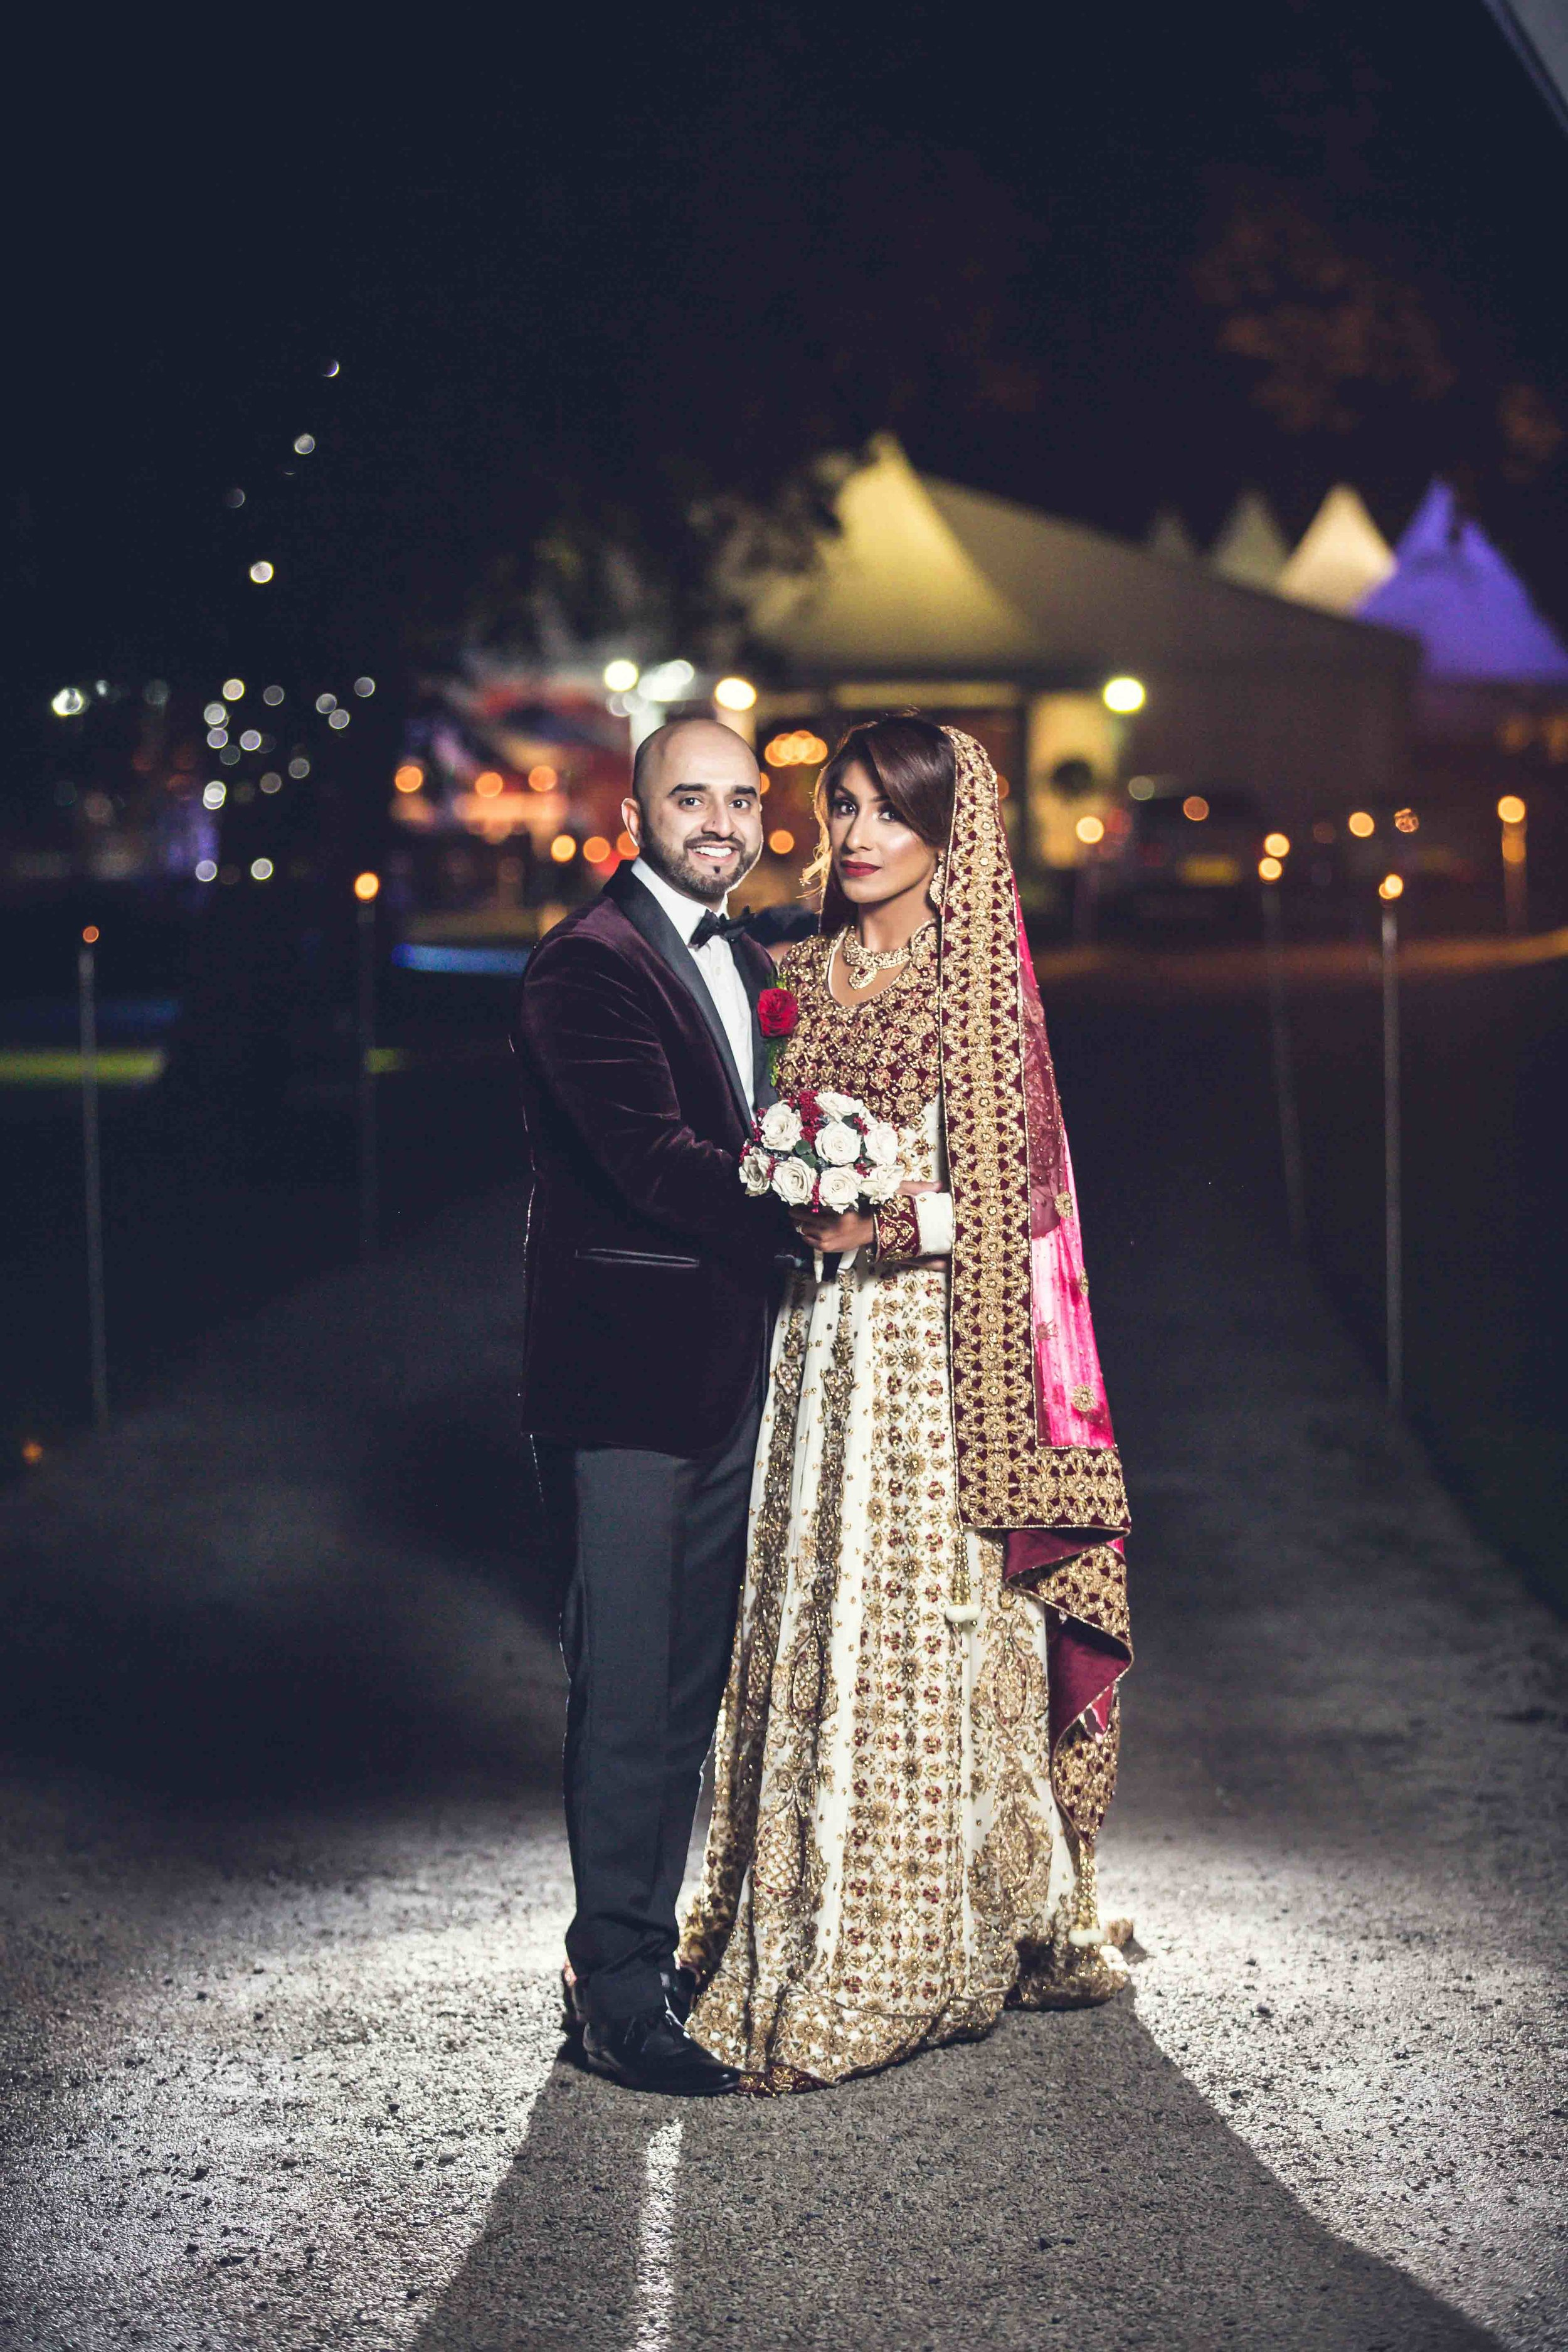 Asian Wedding Photographer Opu Sultan Photography Lyme Park Scotland Edinburgh Glasgow London Manchester Liverpool Birmingham Wedding Photos prewed shoot Azman & Saira Blog-127.jpg